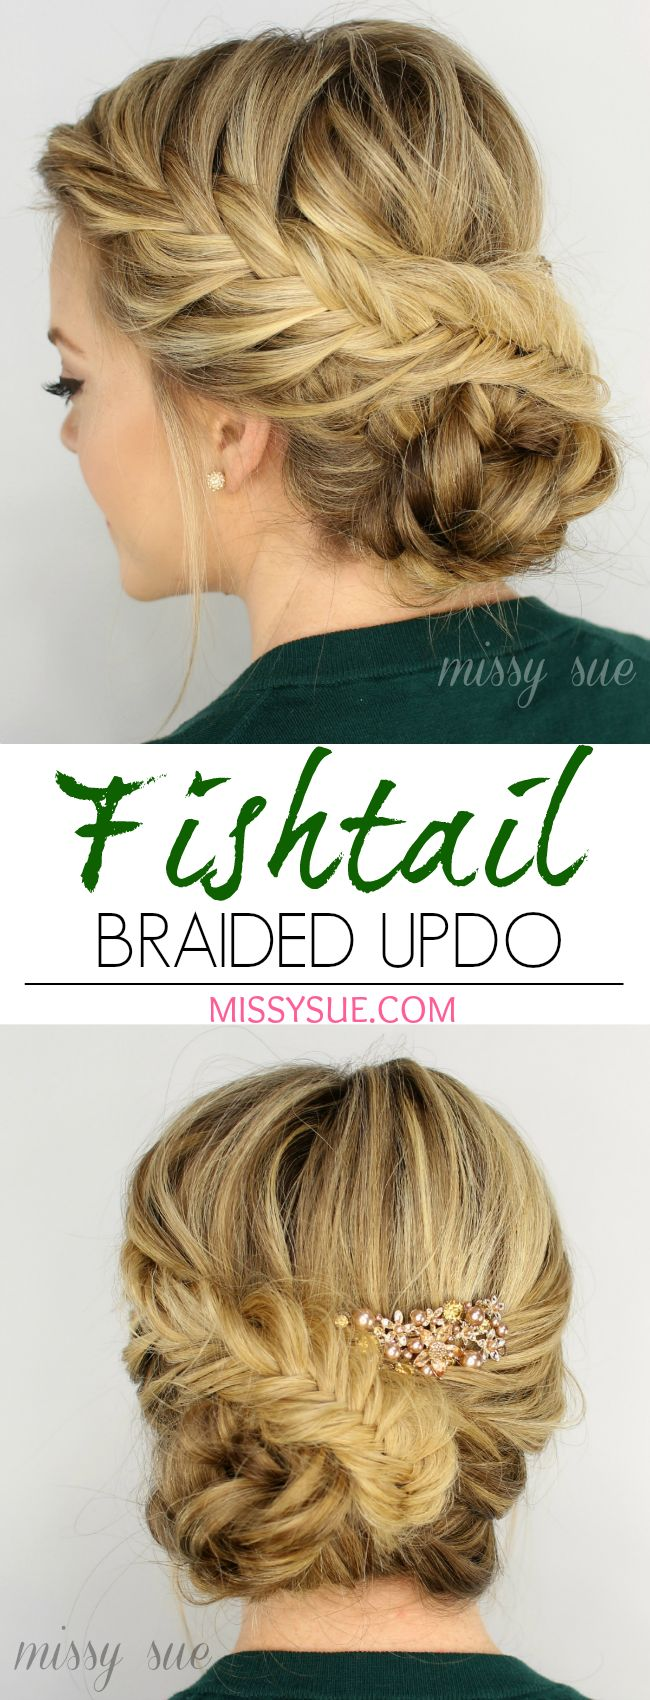 Fishtail Braided Updo